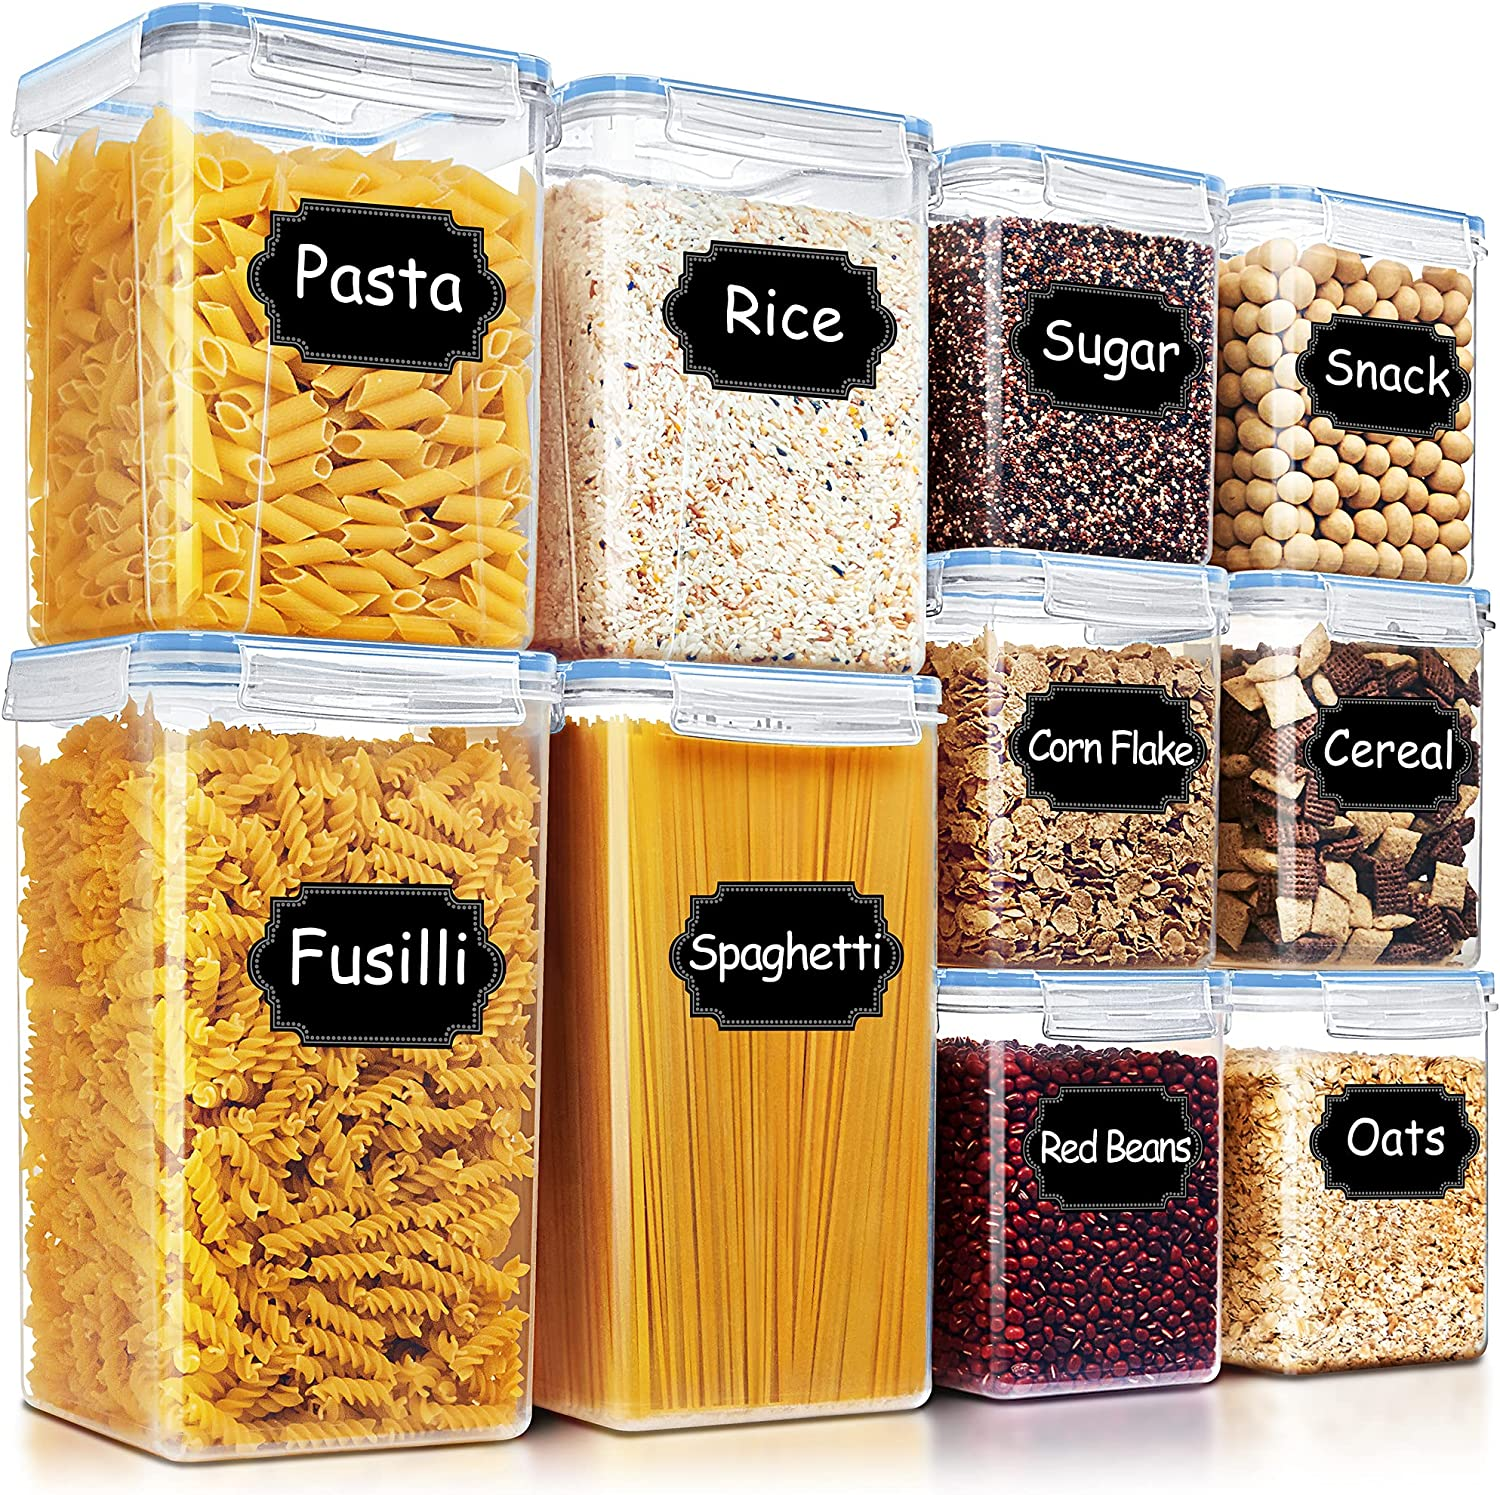 Airtight Food Storage Containers - Blingco 10 PCS Large Cereal Dry Food Storage Containers, Kitchen & Pantry Organization Canisters with Lids - BPA Free for Flour, Sugar, Baking Supplies - Blue